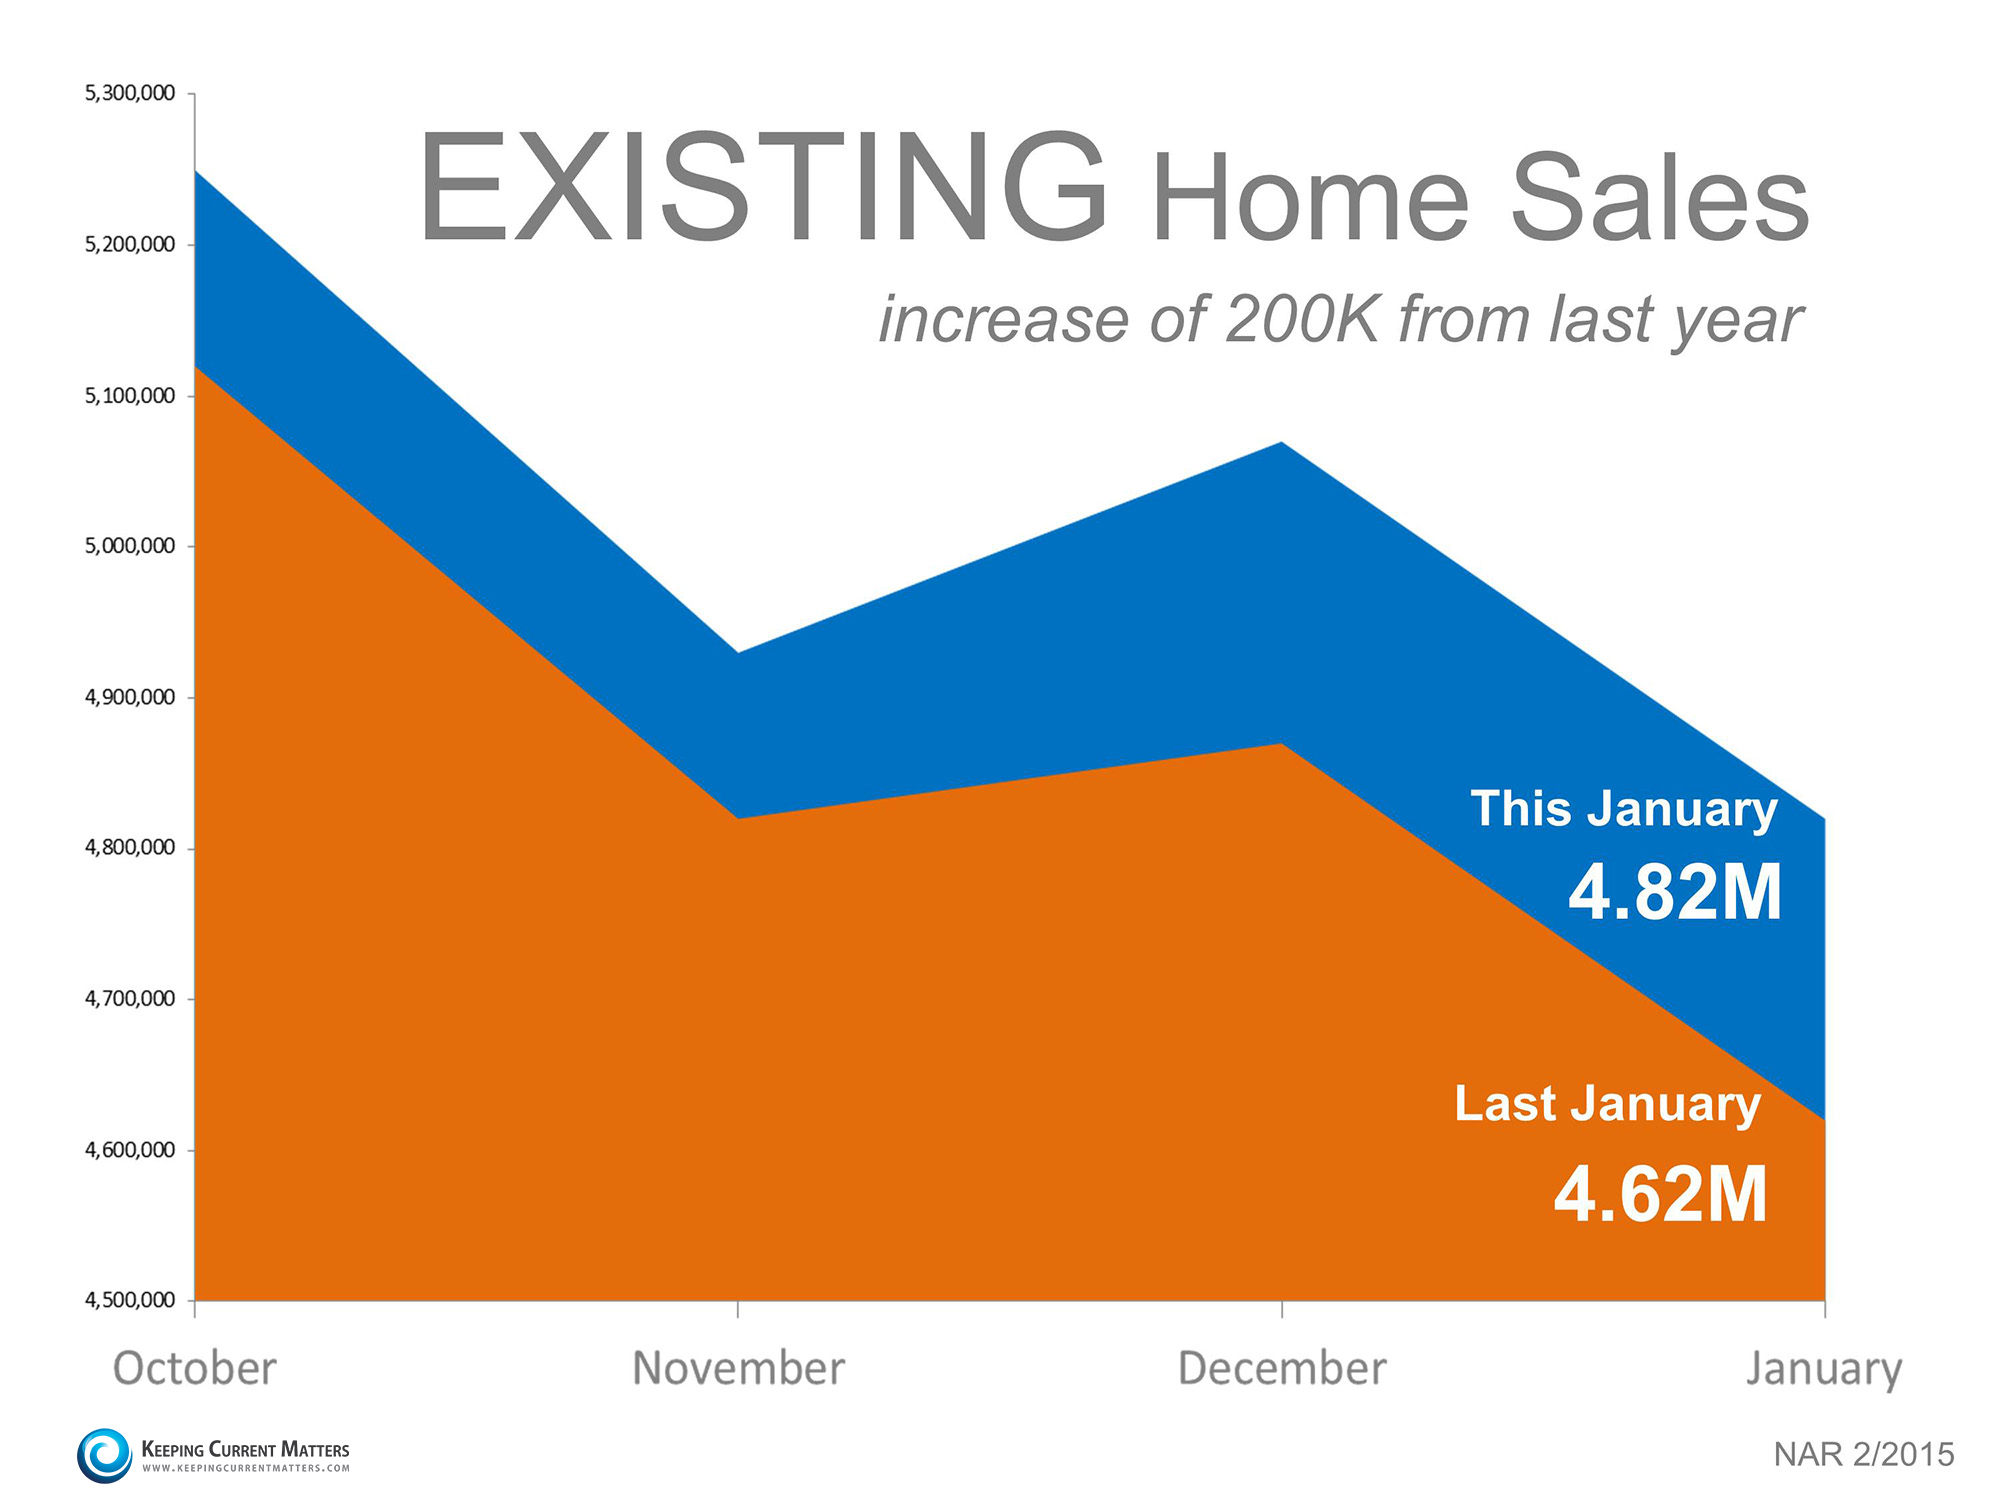 Existing Home Sales Report | Keeping Current Matters